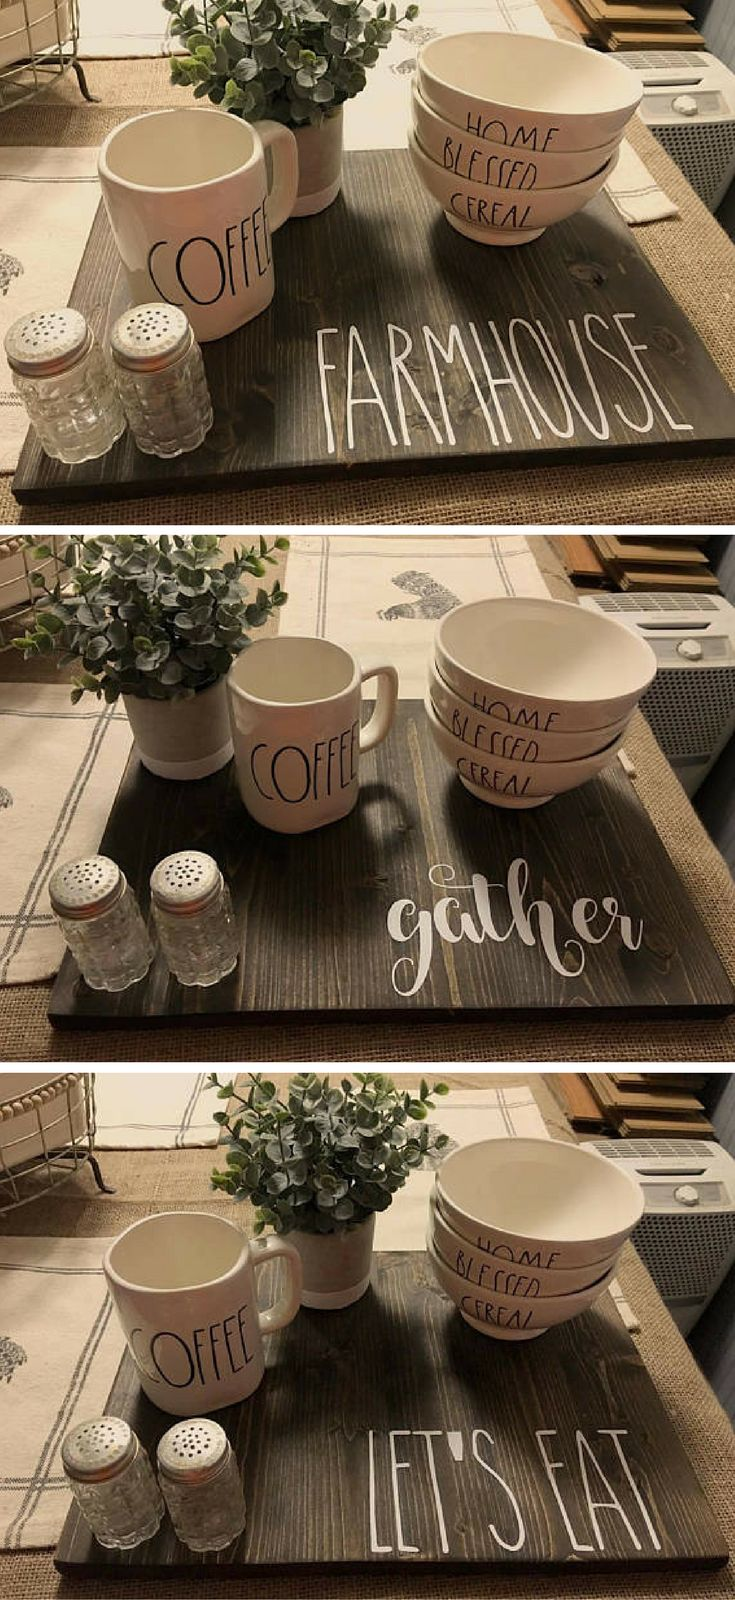 Wooden Placemat//tray Rae Dunn Inspired #placemat #tray #ad #raedunn #farmhouse #fixerupper #letseat #gather #farmhouse